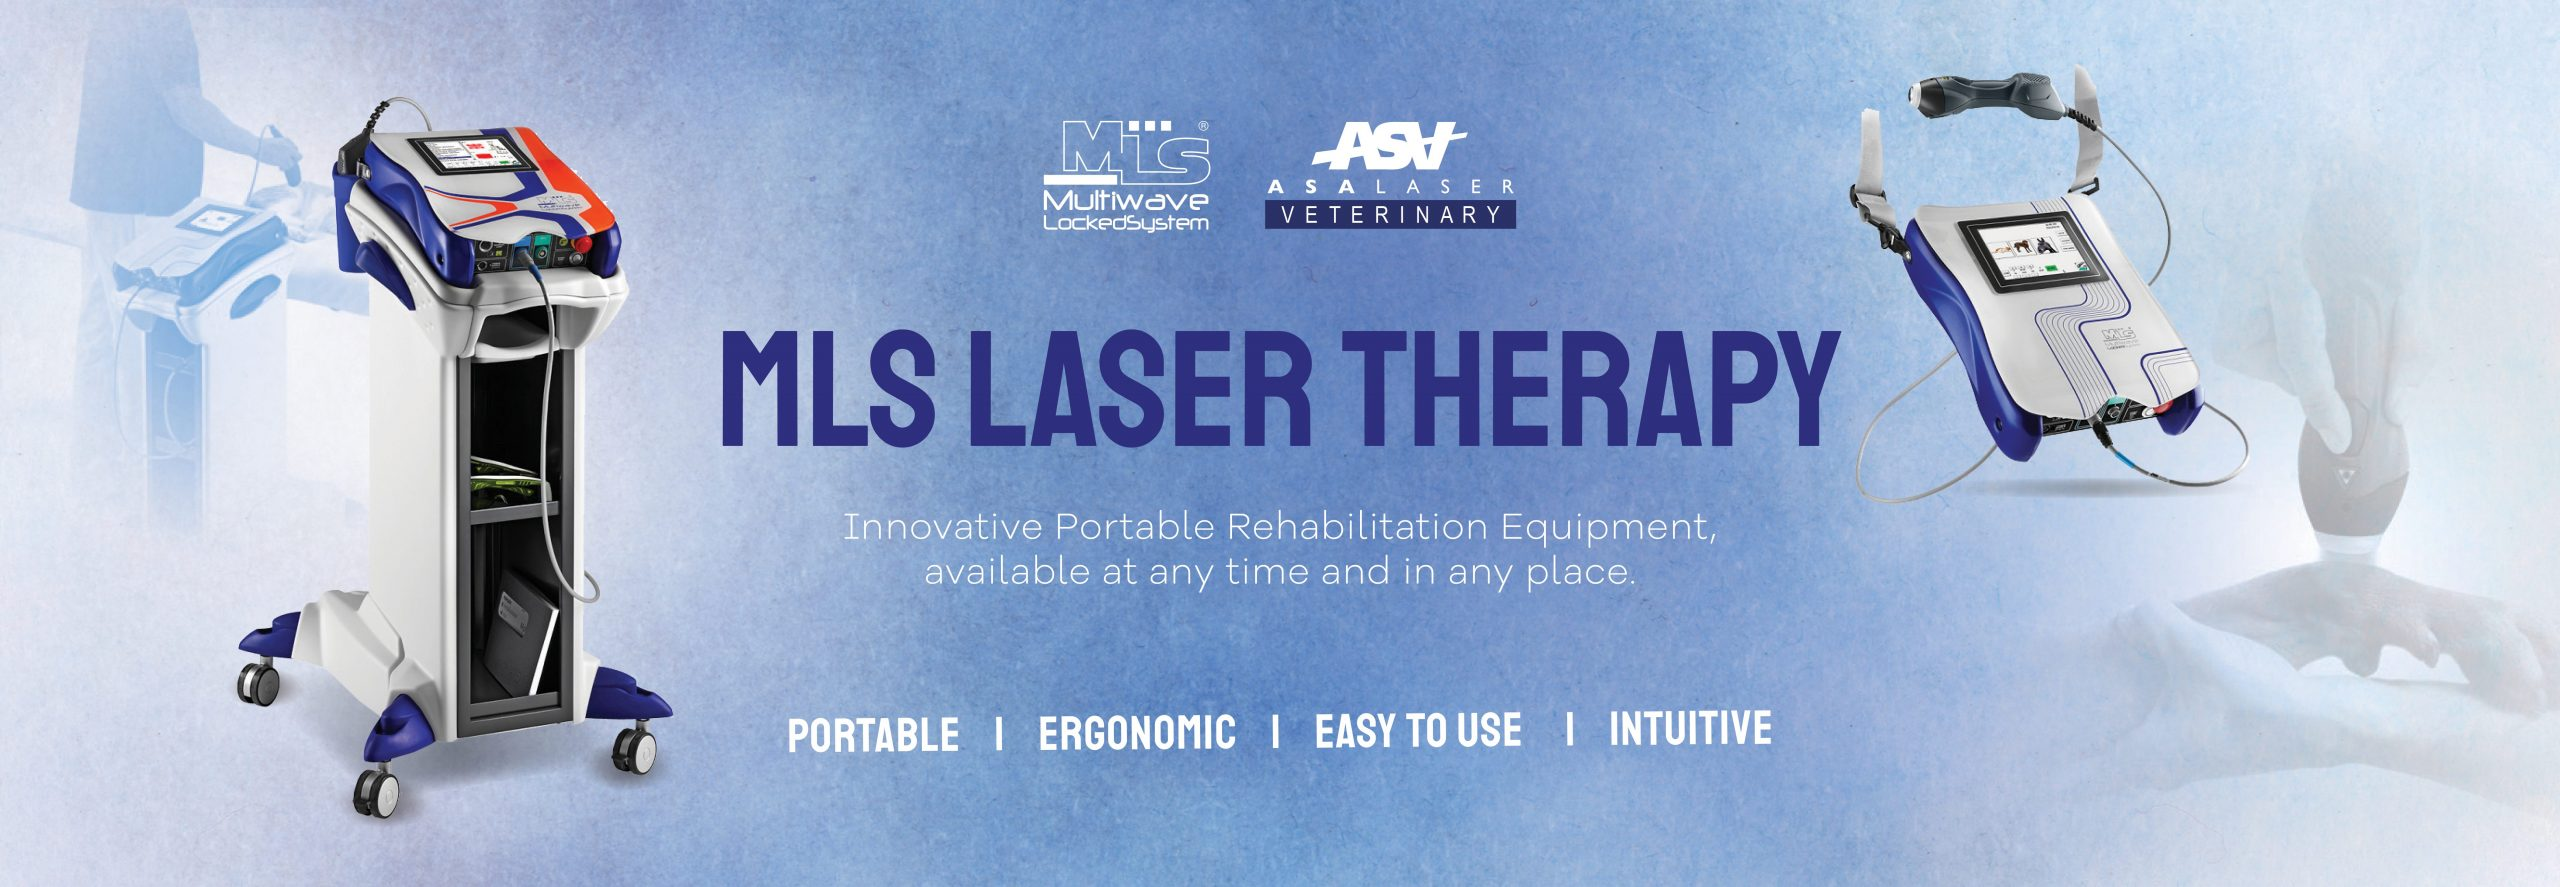 MLS Veterinary Laser